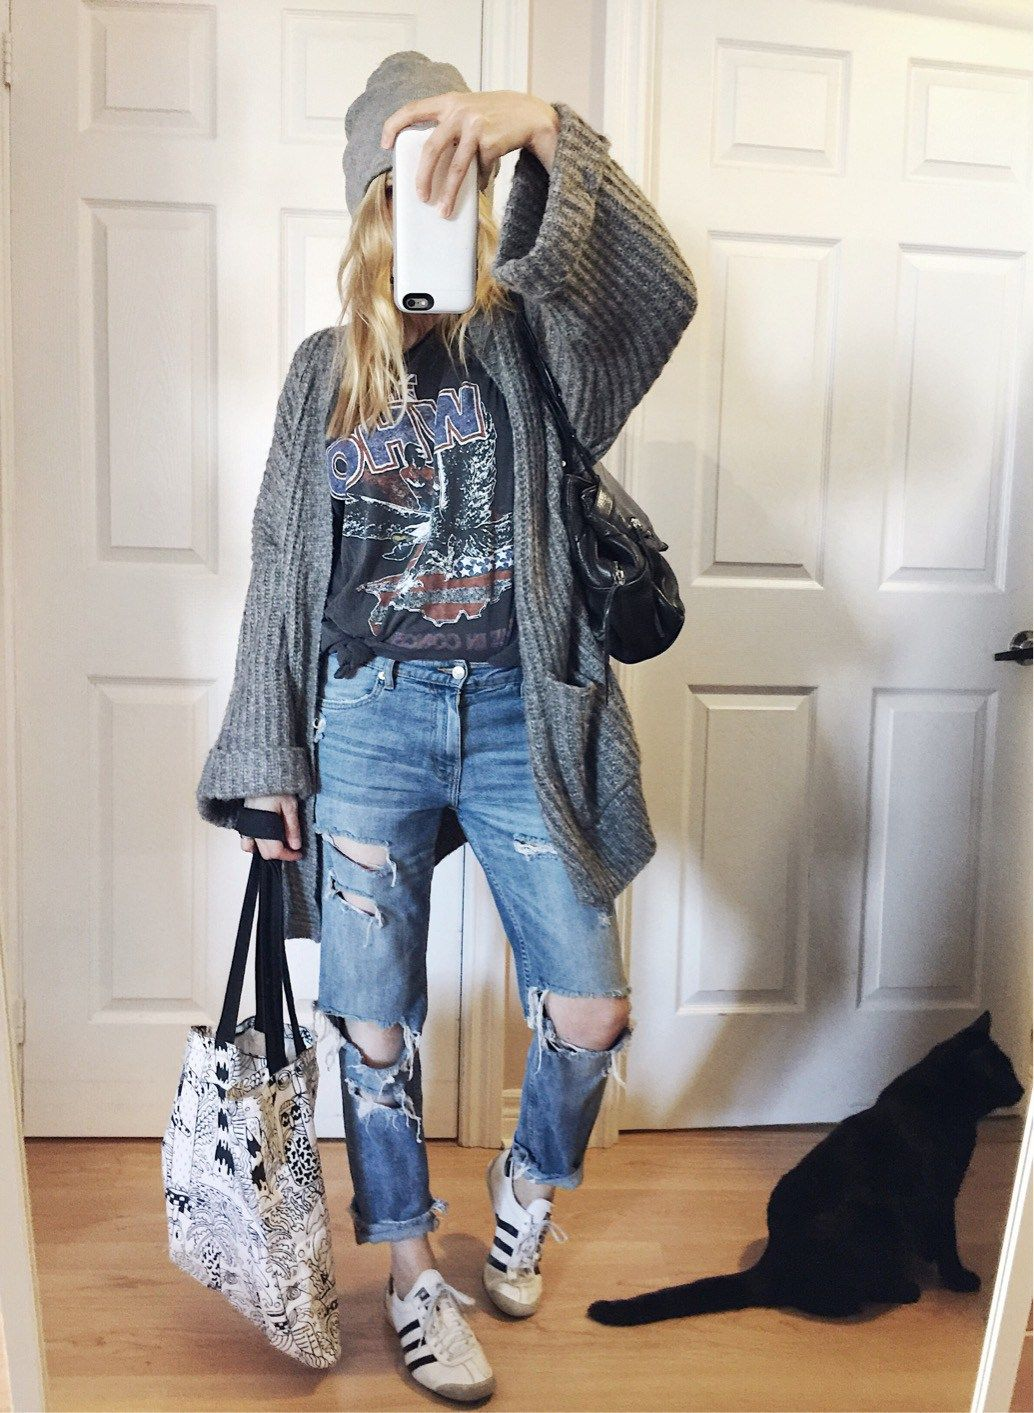 6812681d9c2 Grey Oversized knit cardigan+black band tee+boyfriend jeans+beanie+white  sneakers+printed tote bag. Fall Casual Outfit 2017